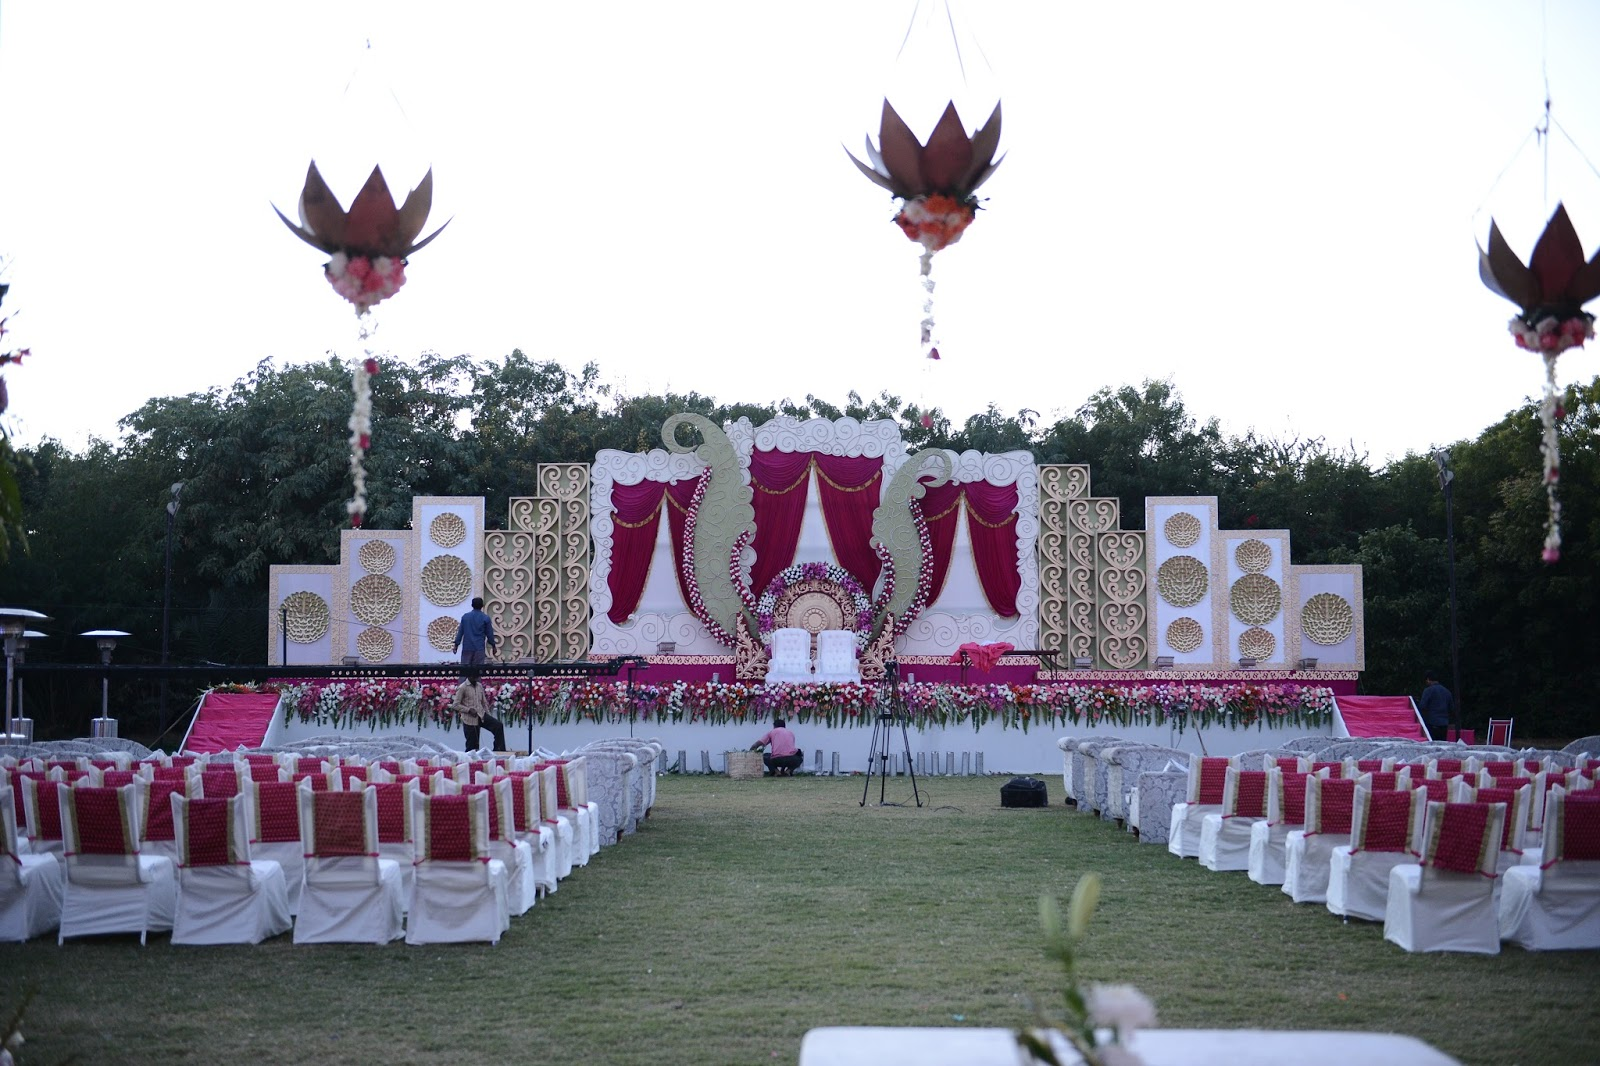 Event Planner Is An Management Company We Are Known For Our Creative And Innovative Planning Services